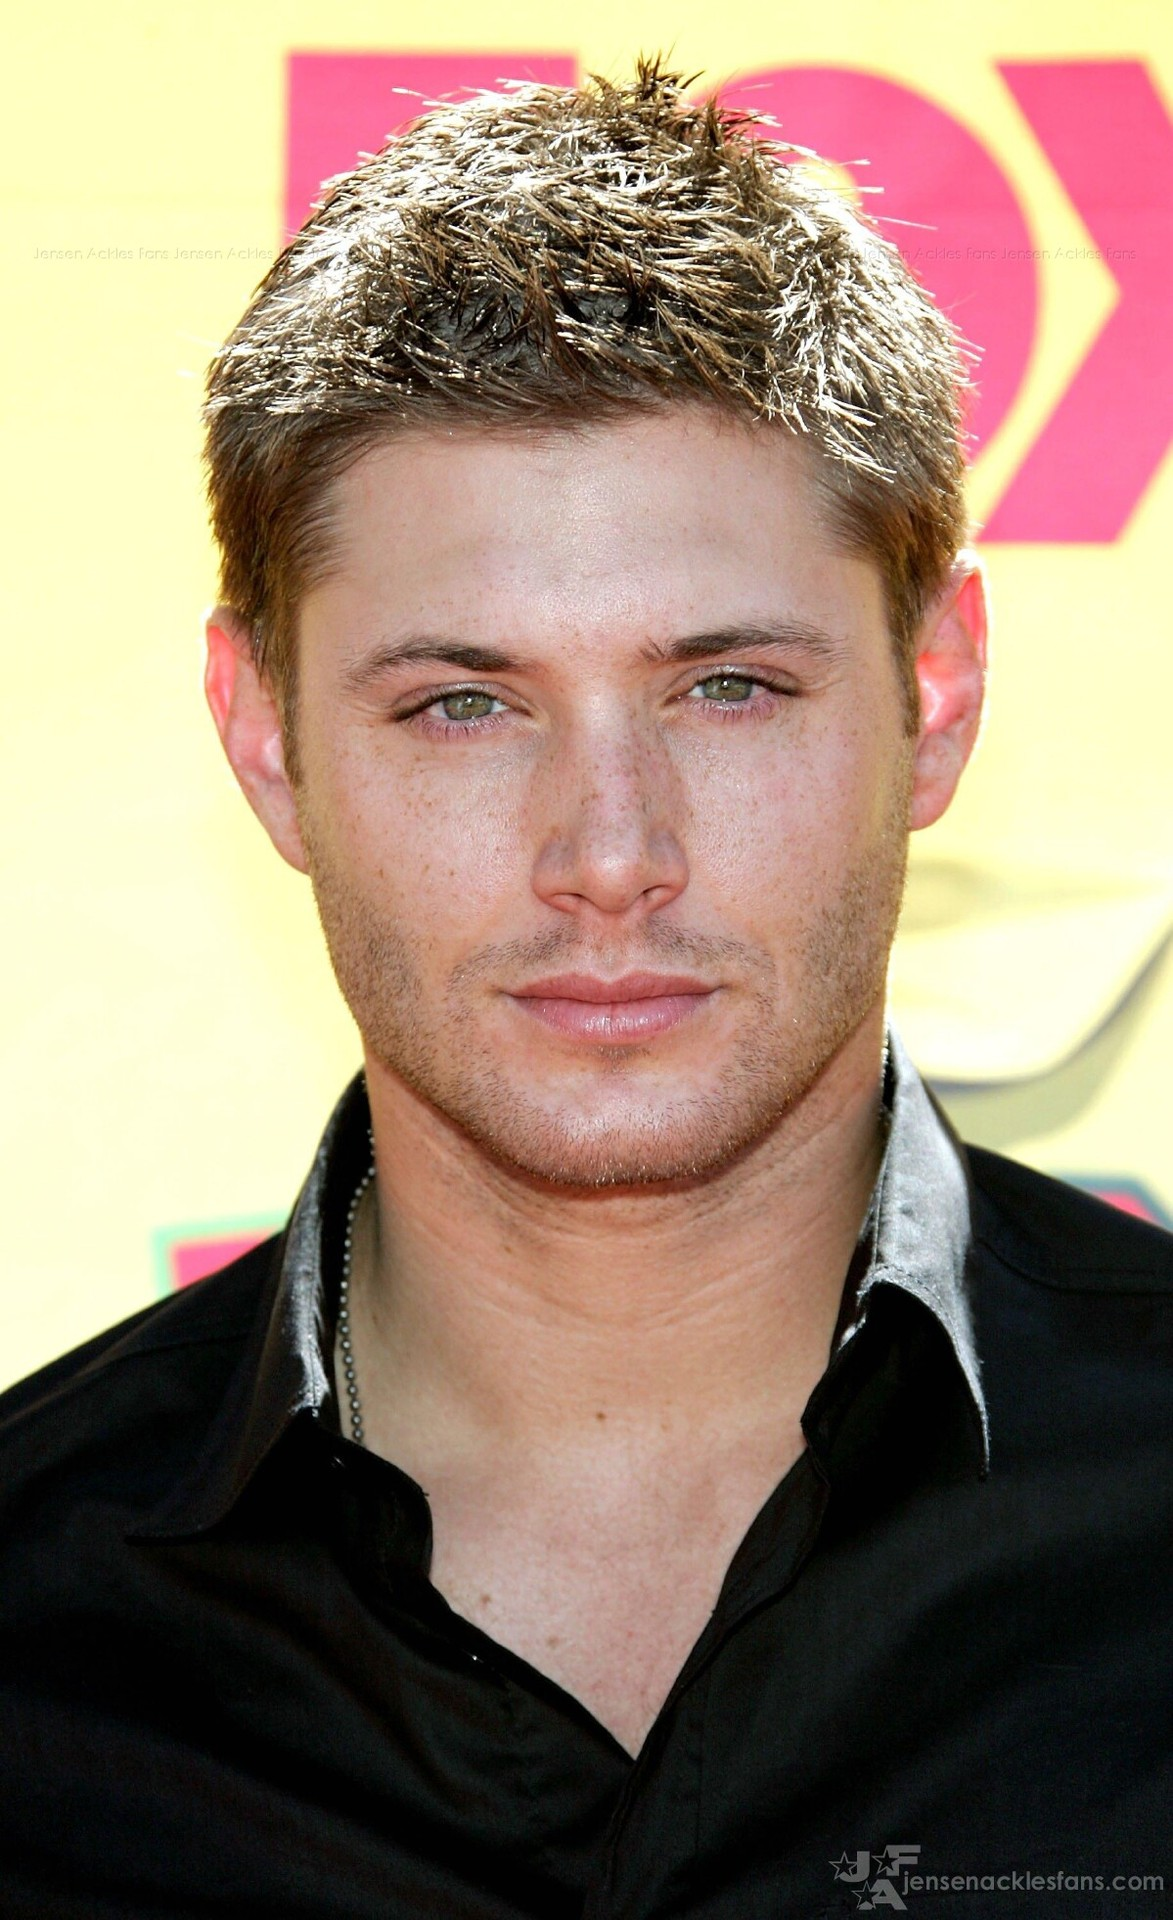 Jensen Ackles as a Teen